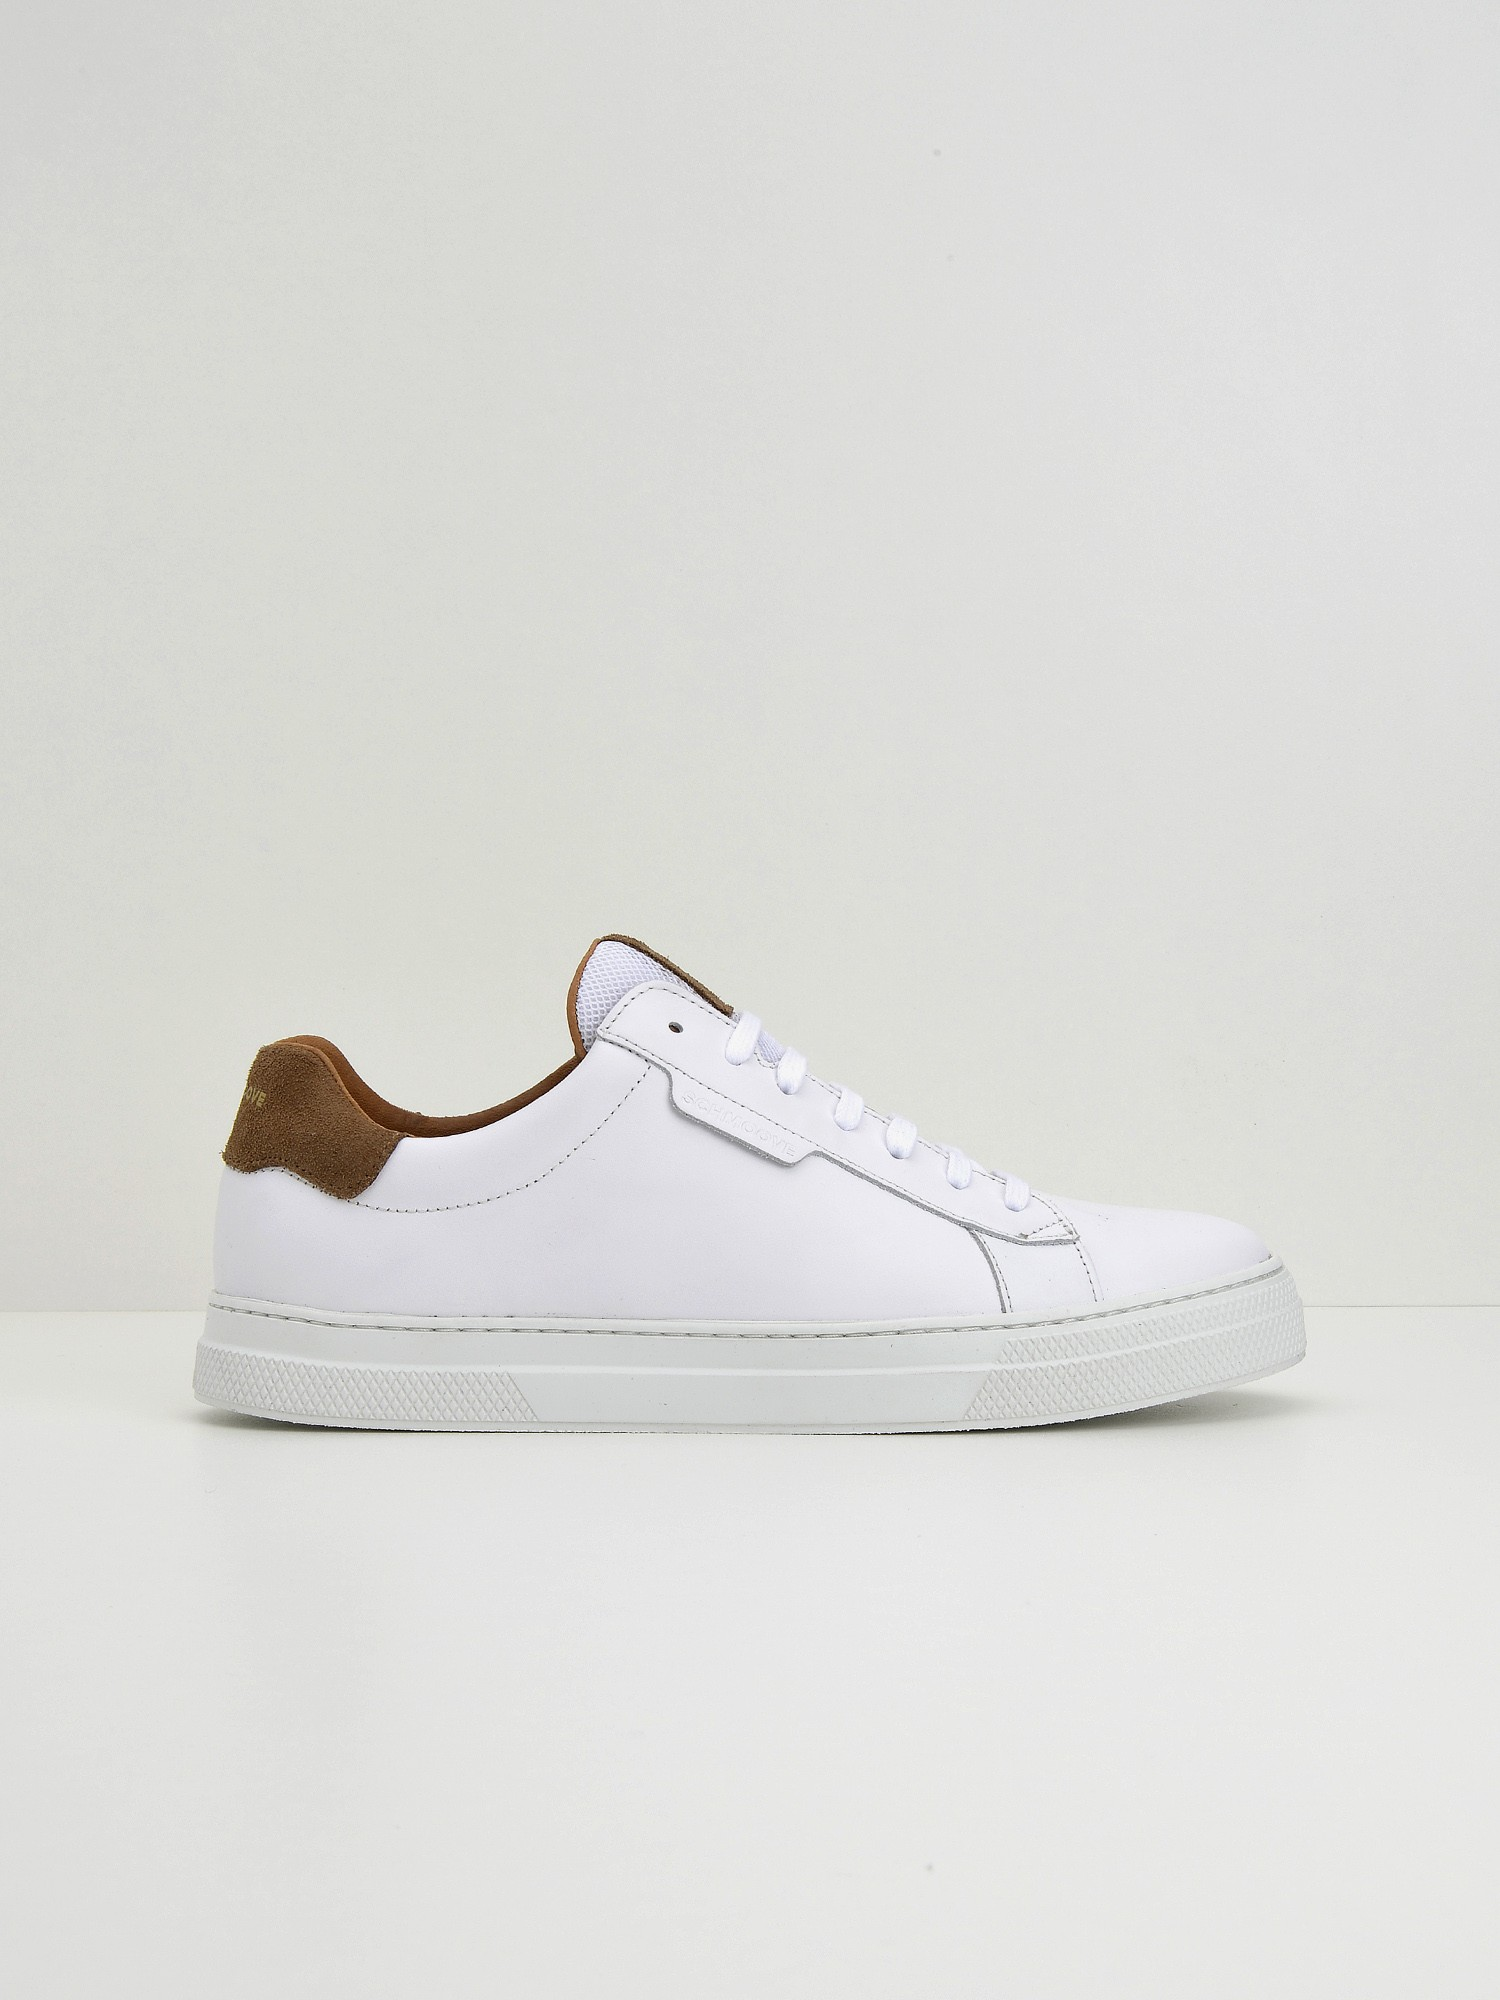 schmoove.fr Spark Clay - Nappa/Suede - White/Vison